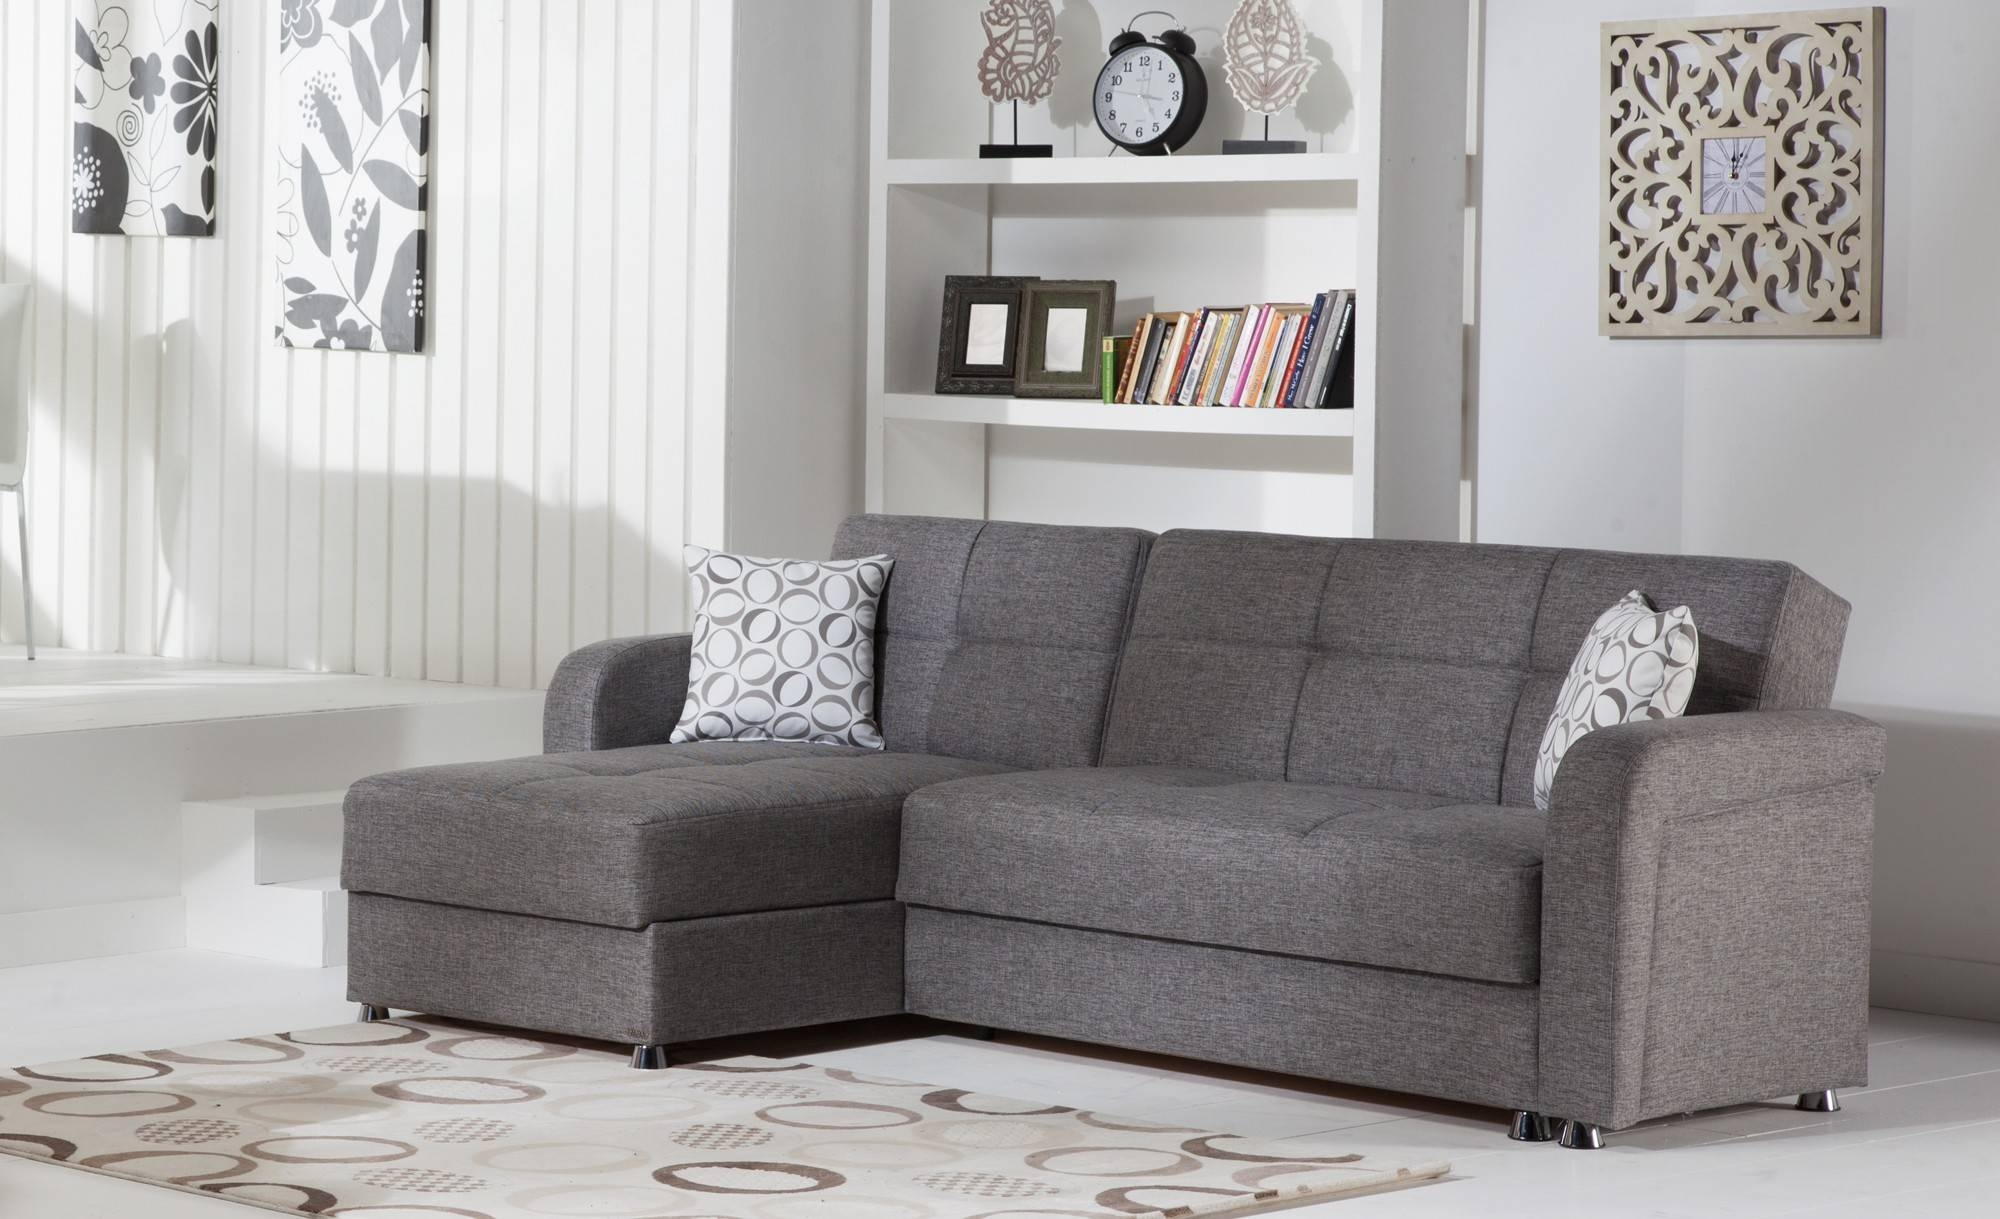 Top 30 of Convertible Sectional Sofas